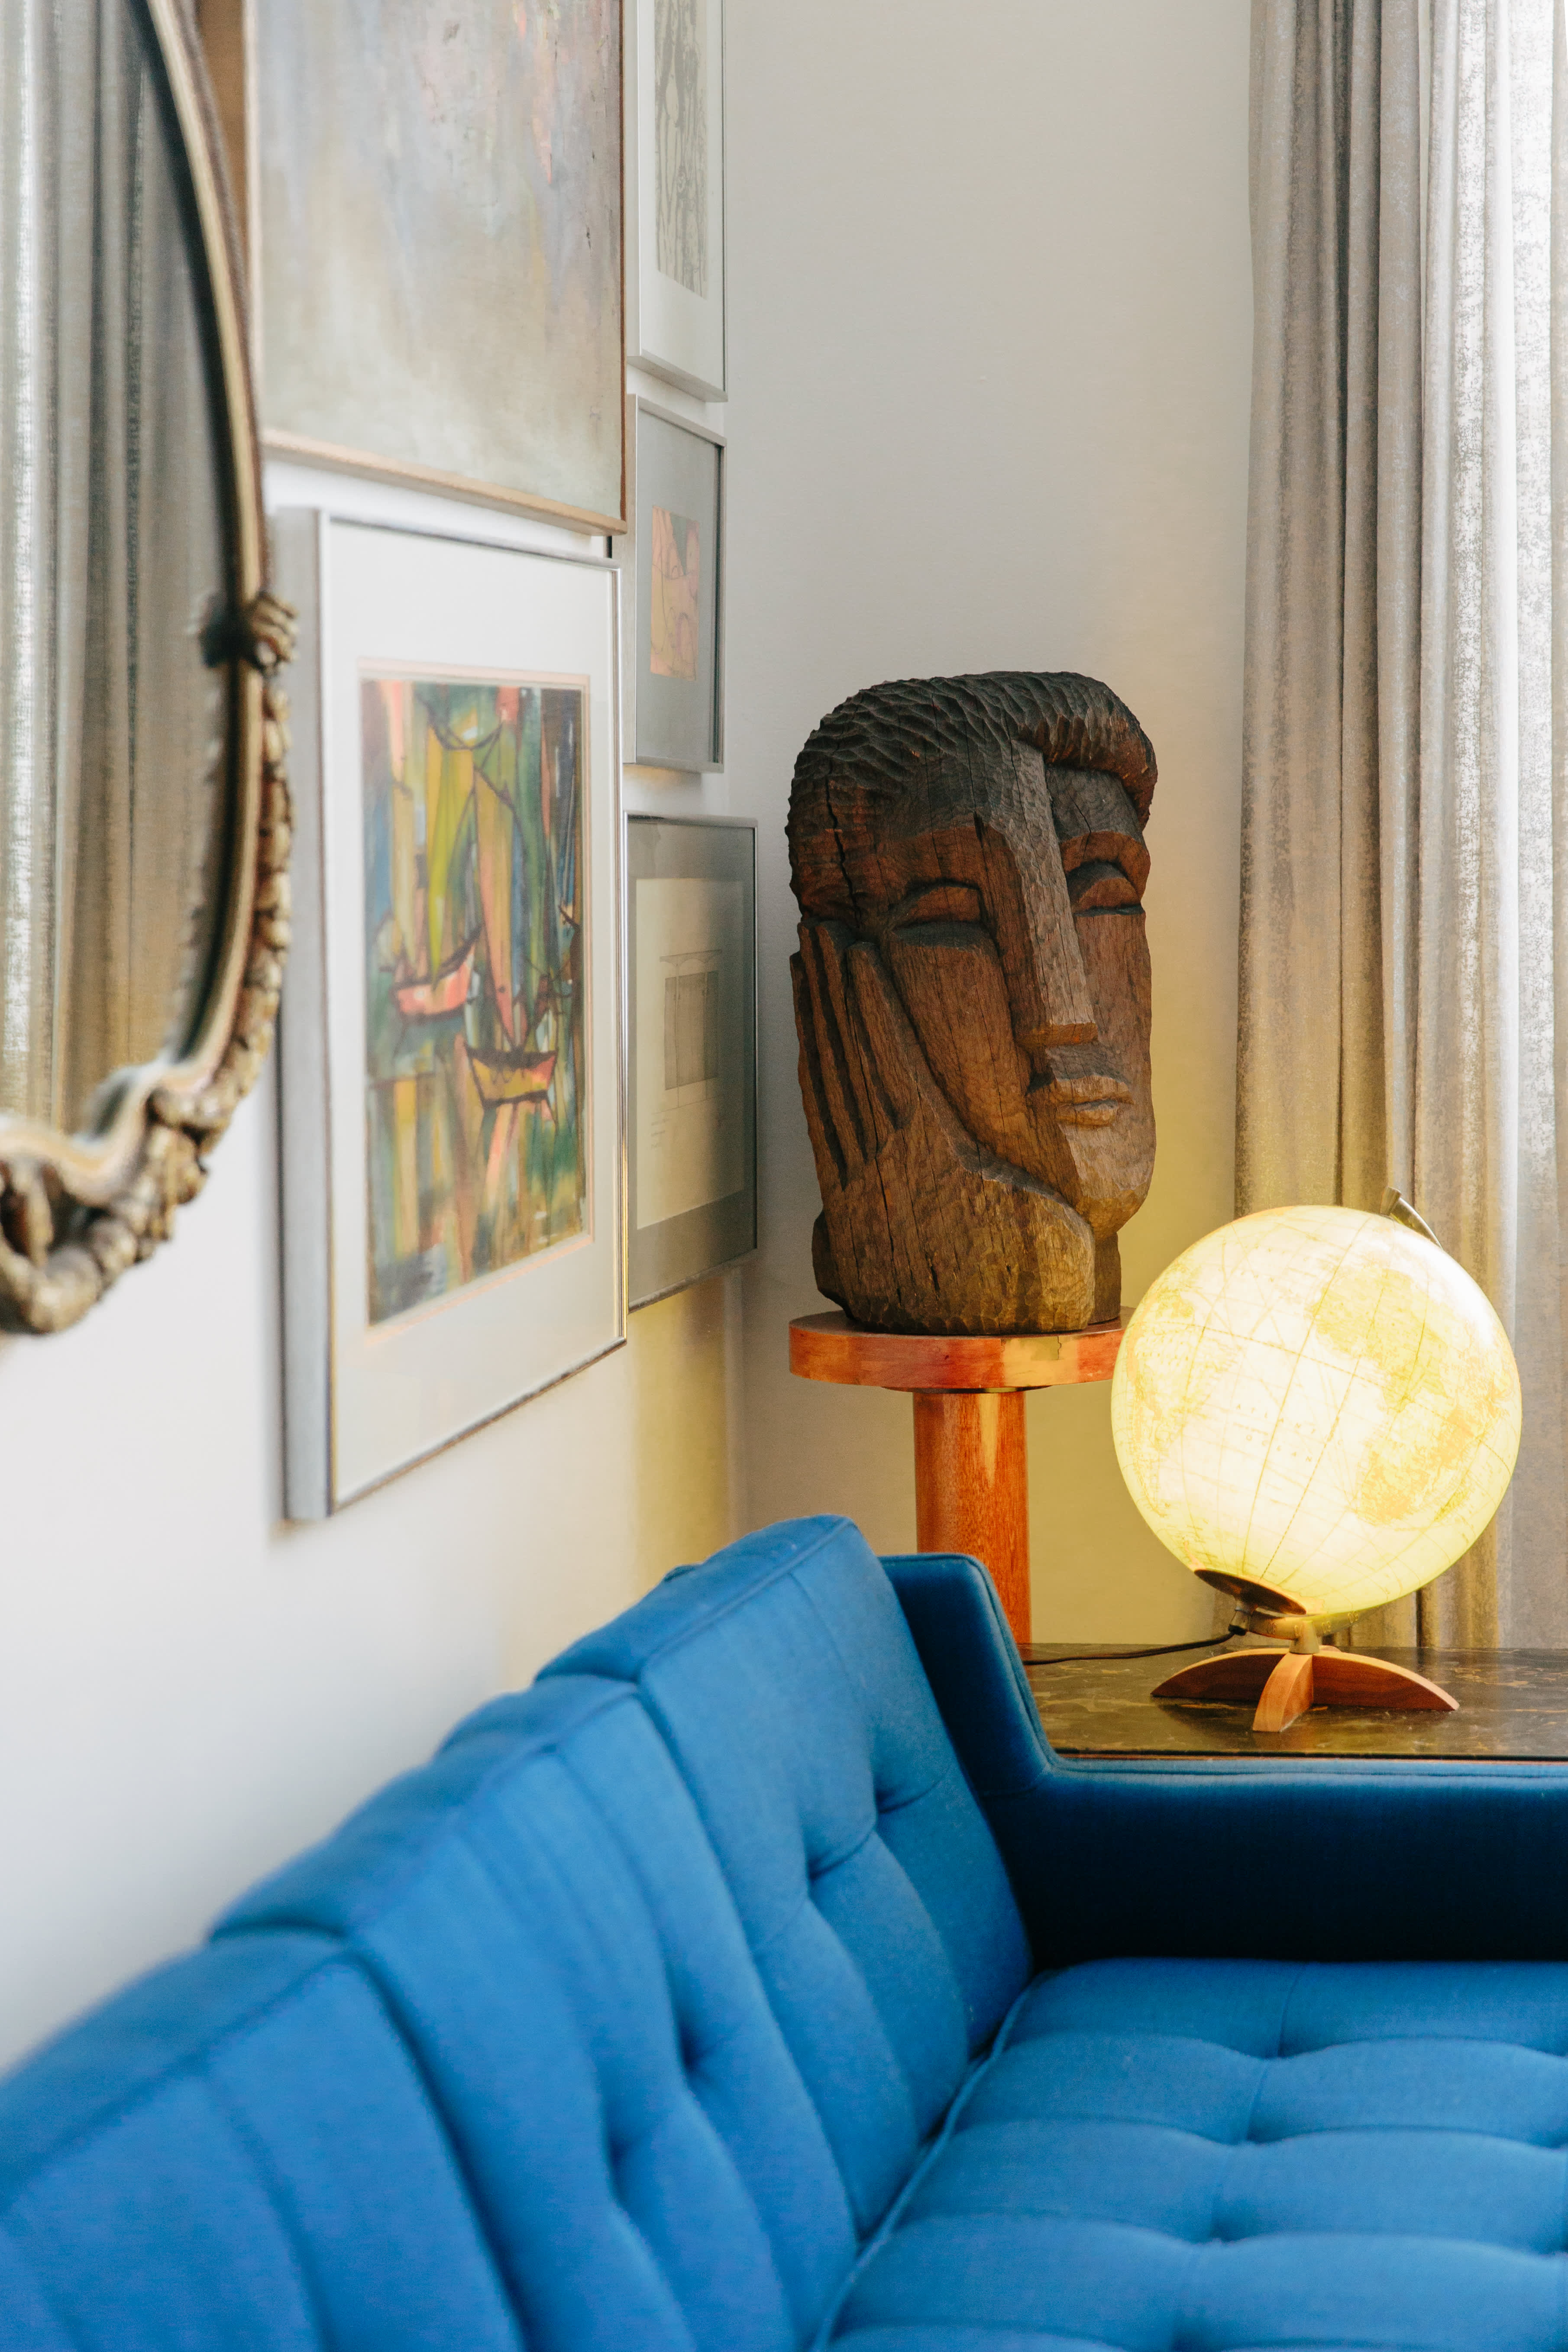 Furniture Store Owners Have A Stunning Chicago Home: Gallery Image 5